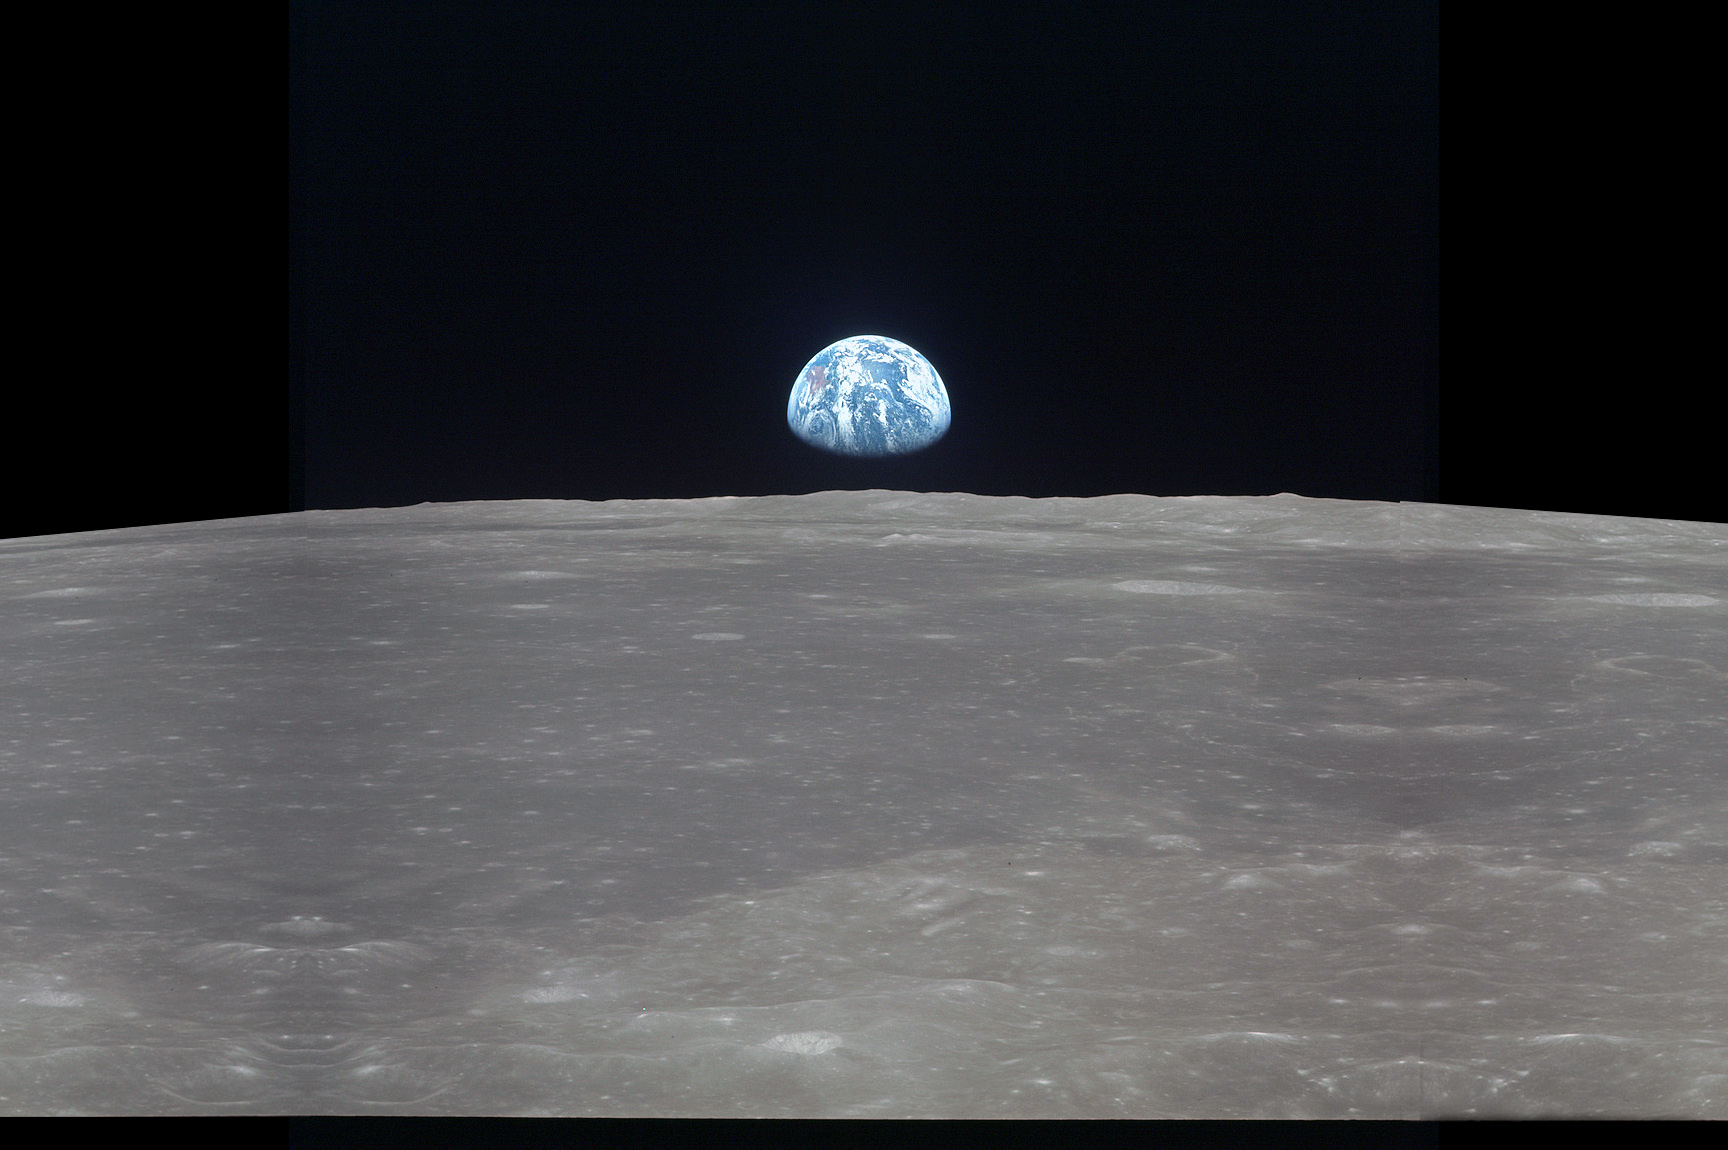 What the Earth looks like from the Moon